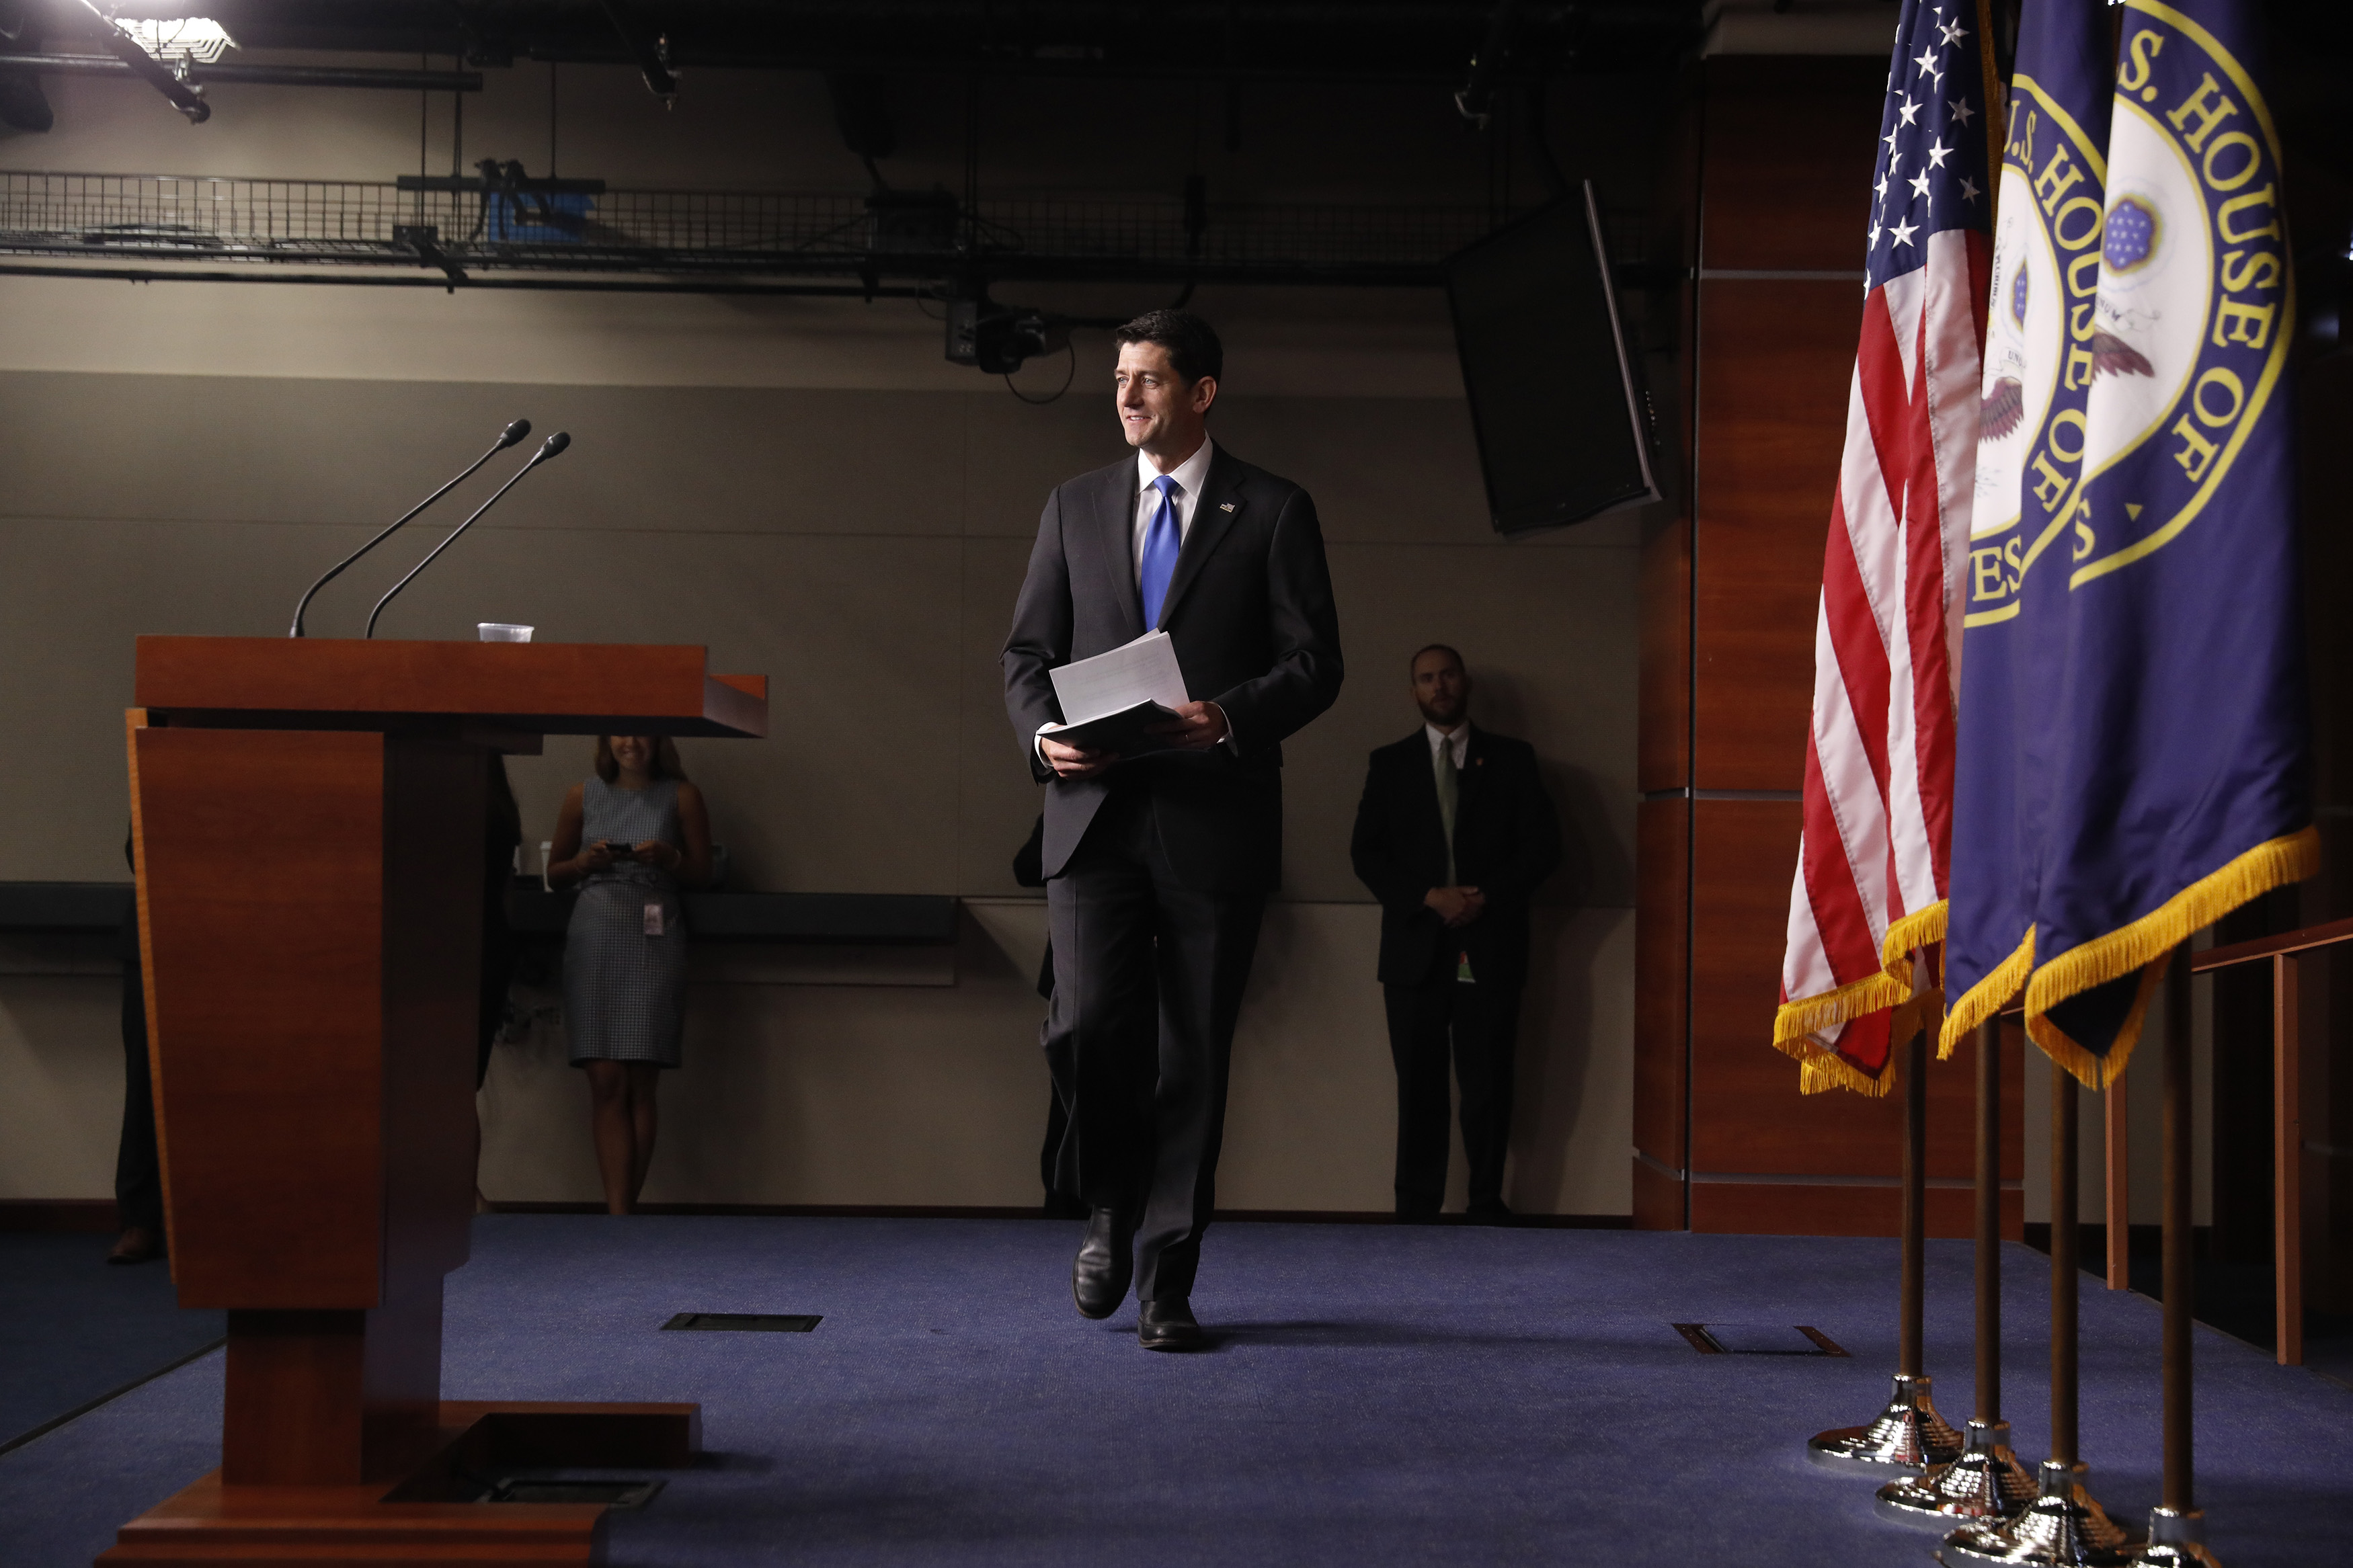 Speaker of the House Paul Ryan arrives for a press conference at the U.S. Capitol September 7, 2017 in Washington, DC.